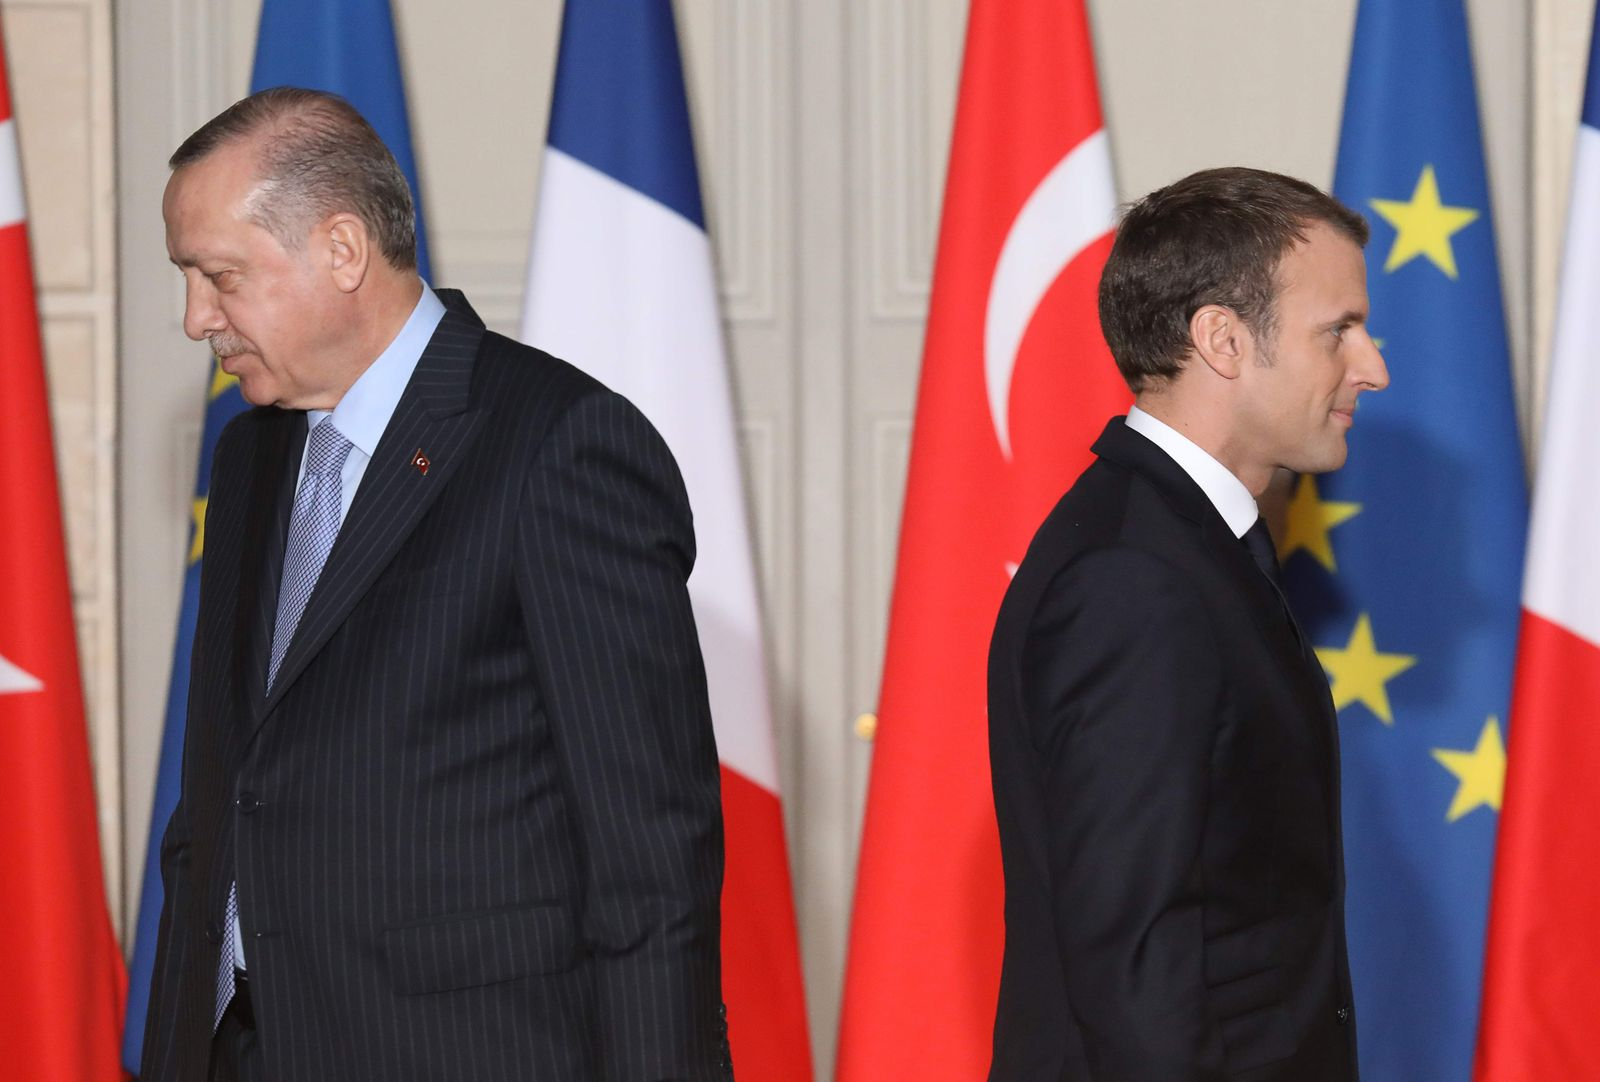 FILES-FRANCE-TURKEY-POLITICS-DIPLOMACY